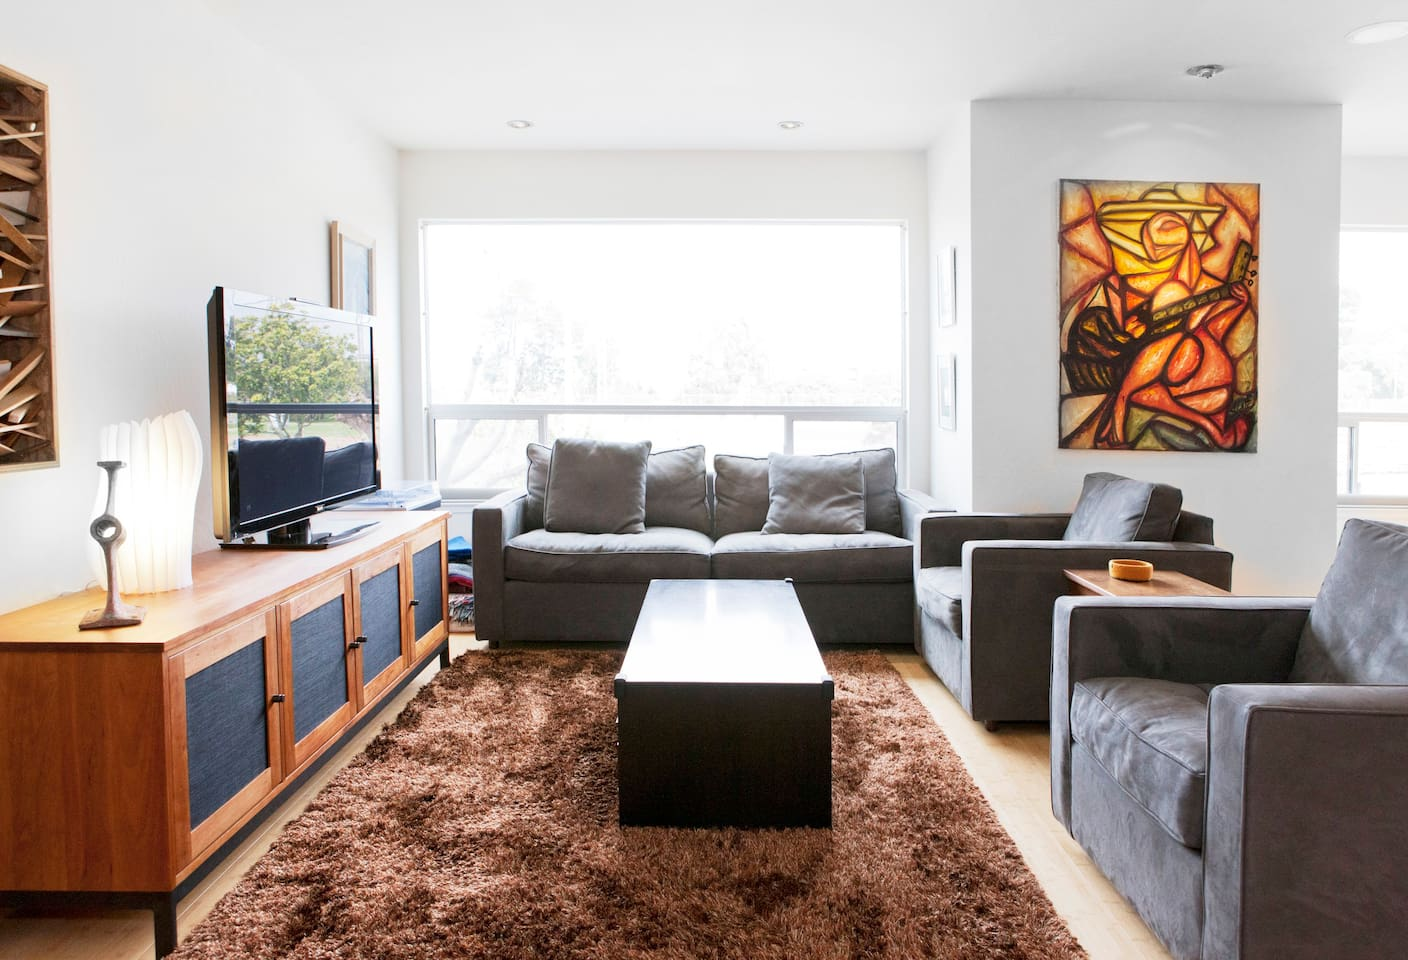 Our Chestnut St condo is full of light, original art, and comfy modern furniture.